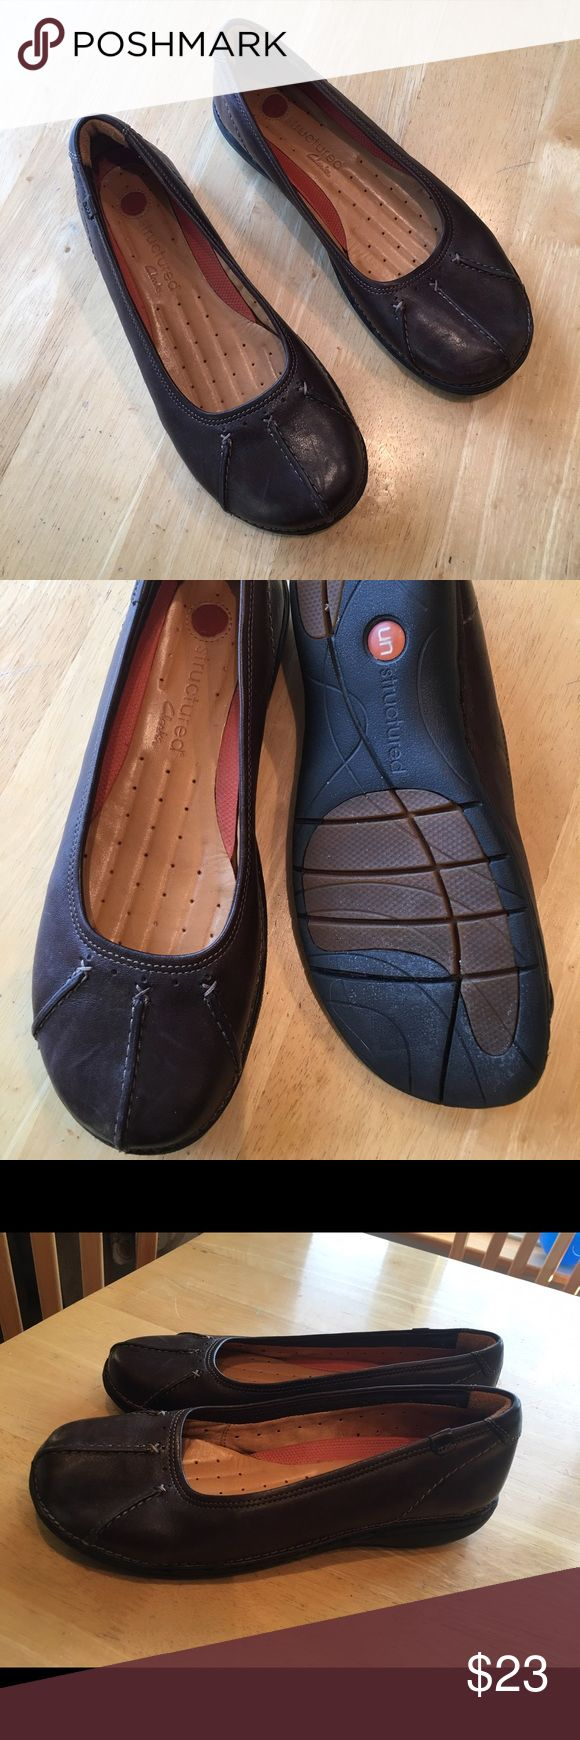 Clarks leather slip on Like new condition. THIS IS A WIDE WIDTH SHOE! Clarks Shoes Flats & Loafers